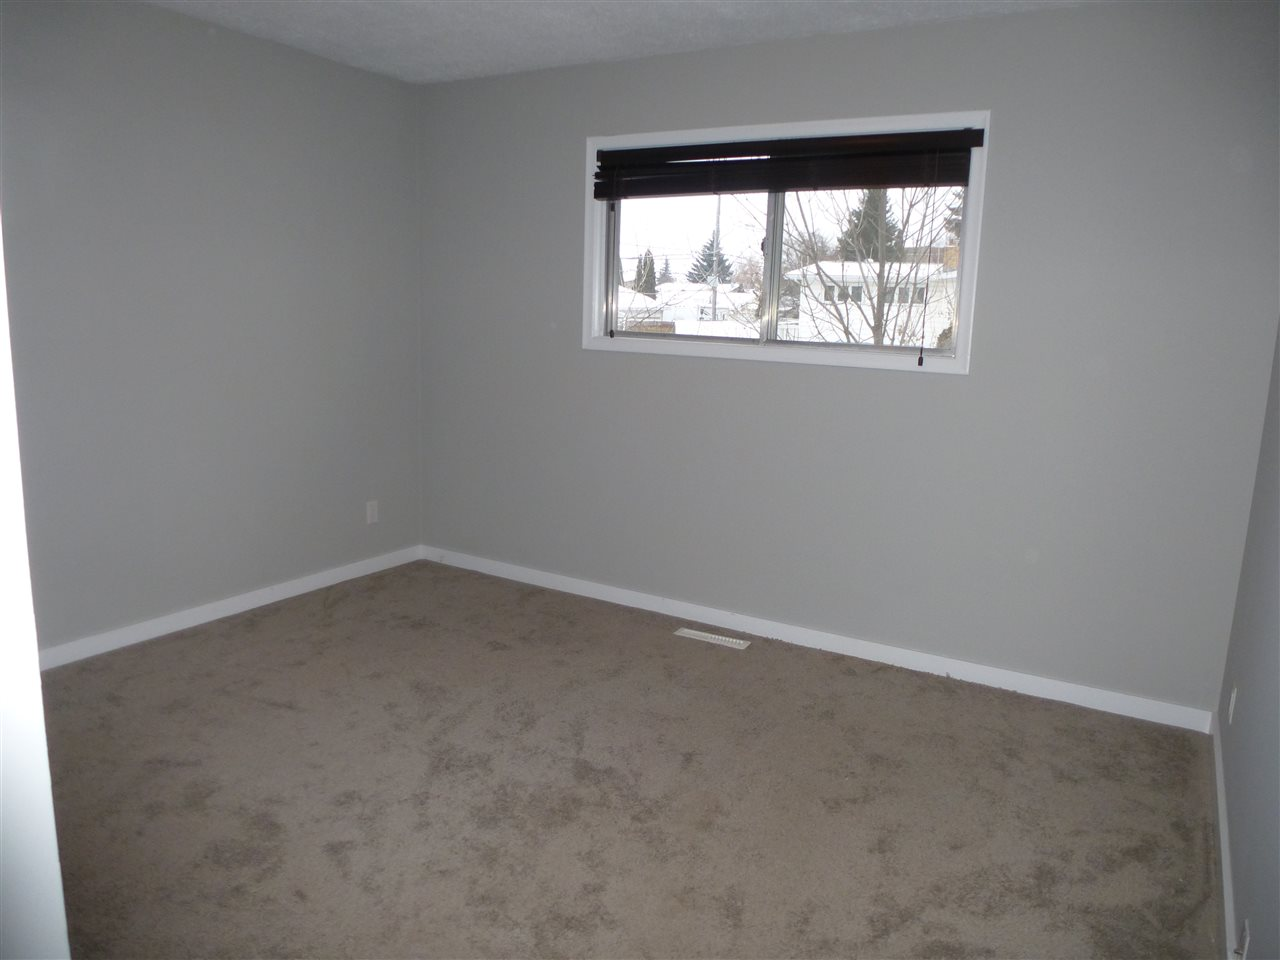 Photo 10: 8810 159A ST NW in Edmonton: Zone 22 House for sale : MLS(r) # E4044366